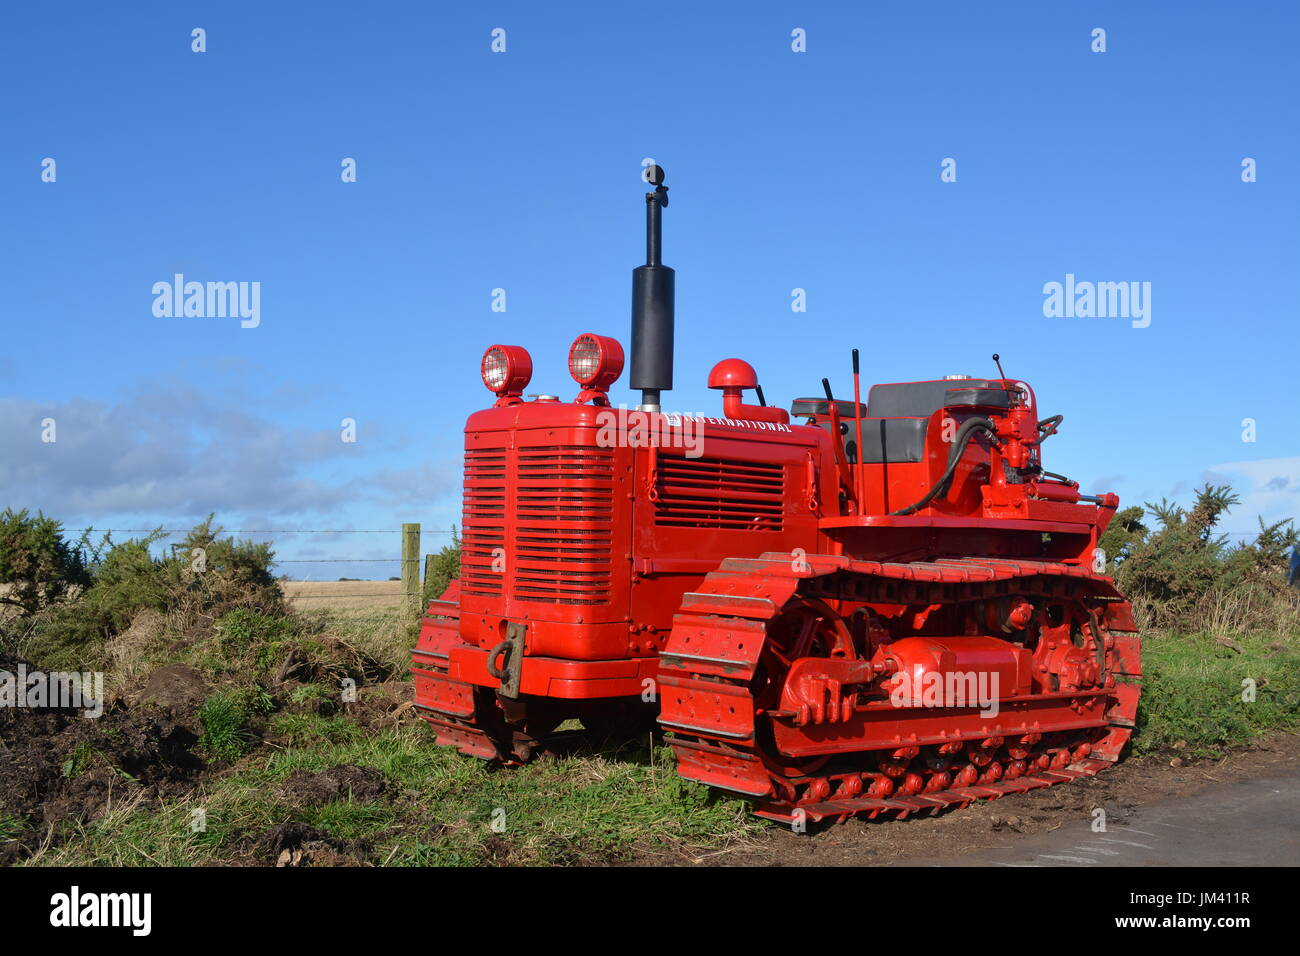 Crawler Tractor Stock Photos & Crawler Tractor Stock Images